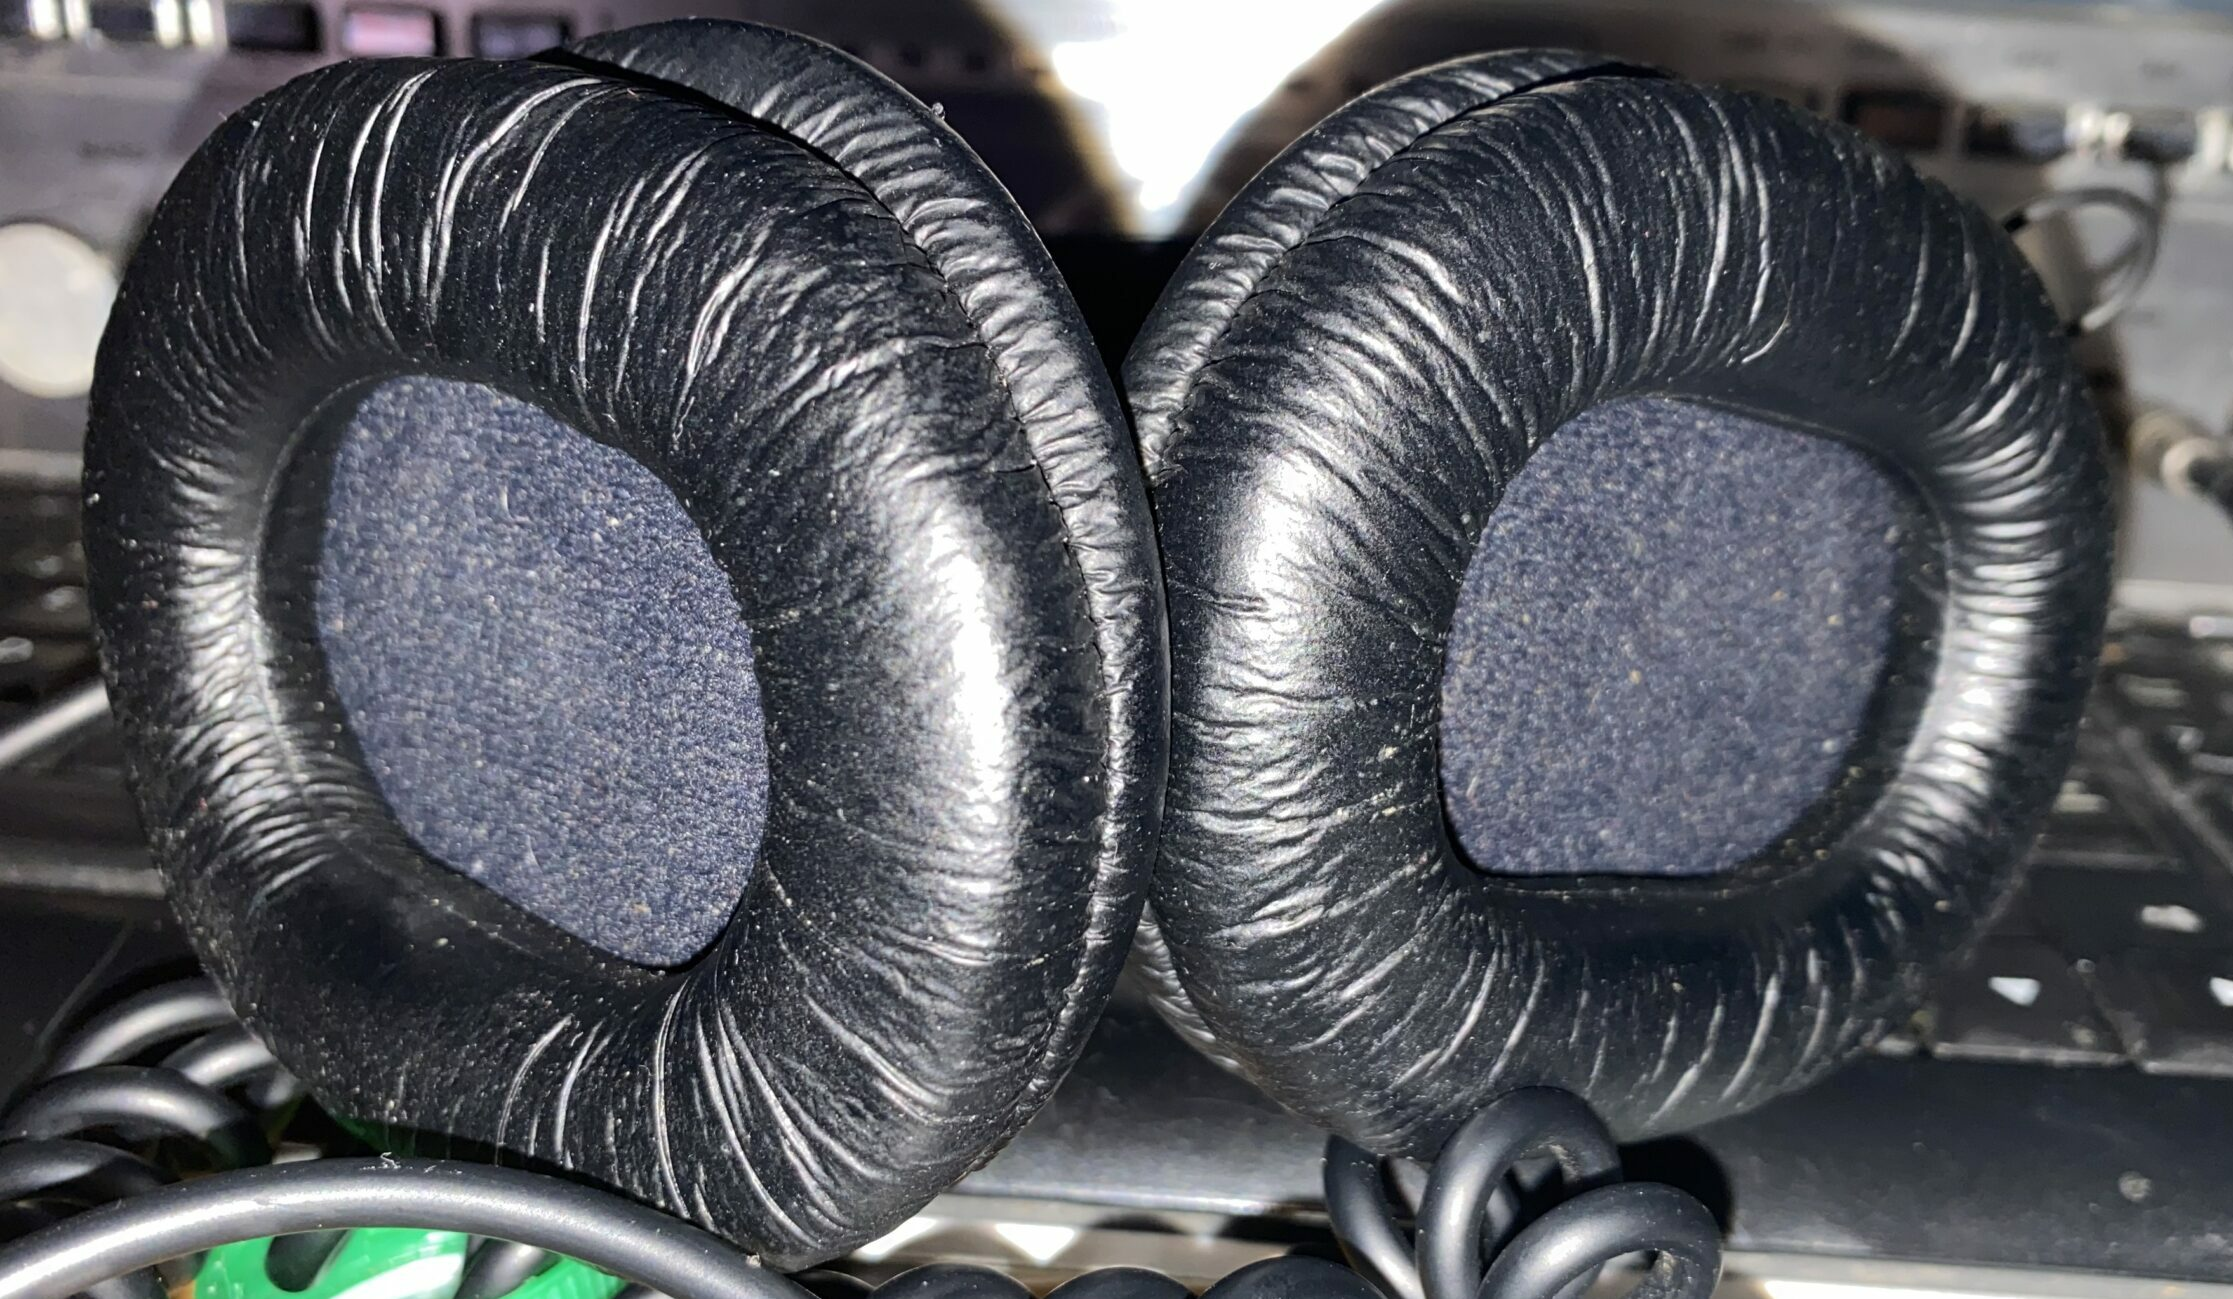 The OEM Earpads for the MDR V6.